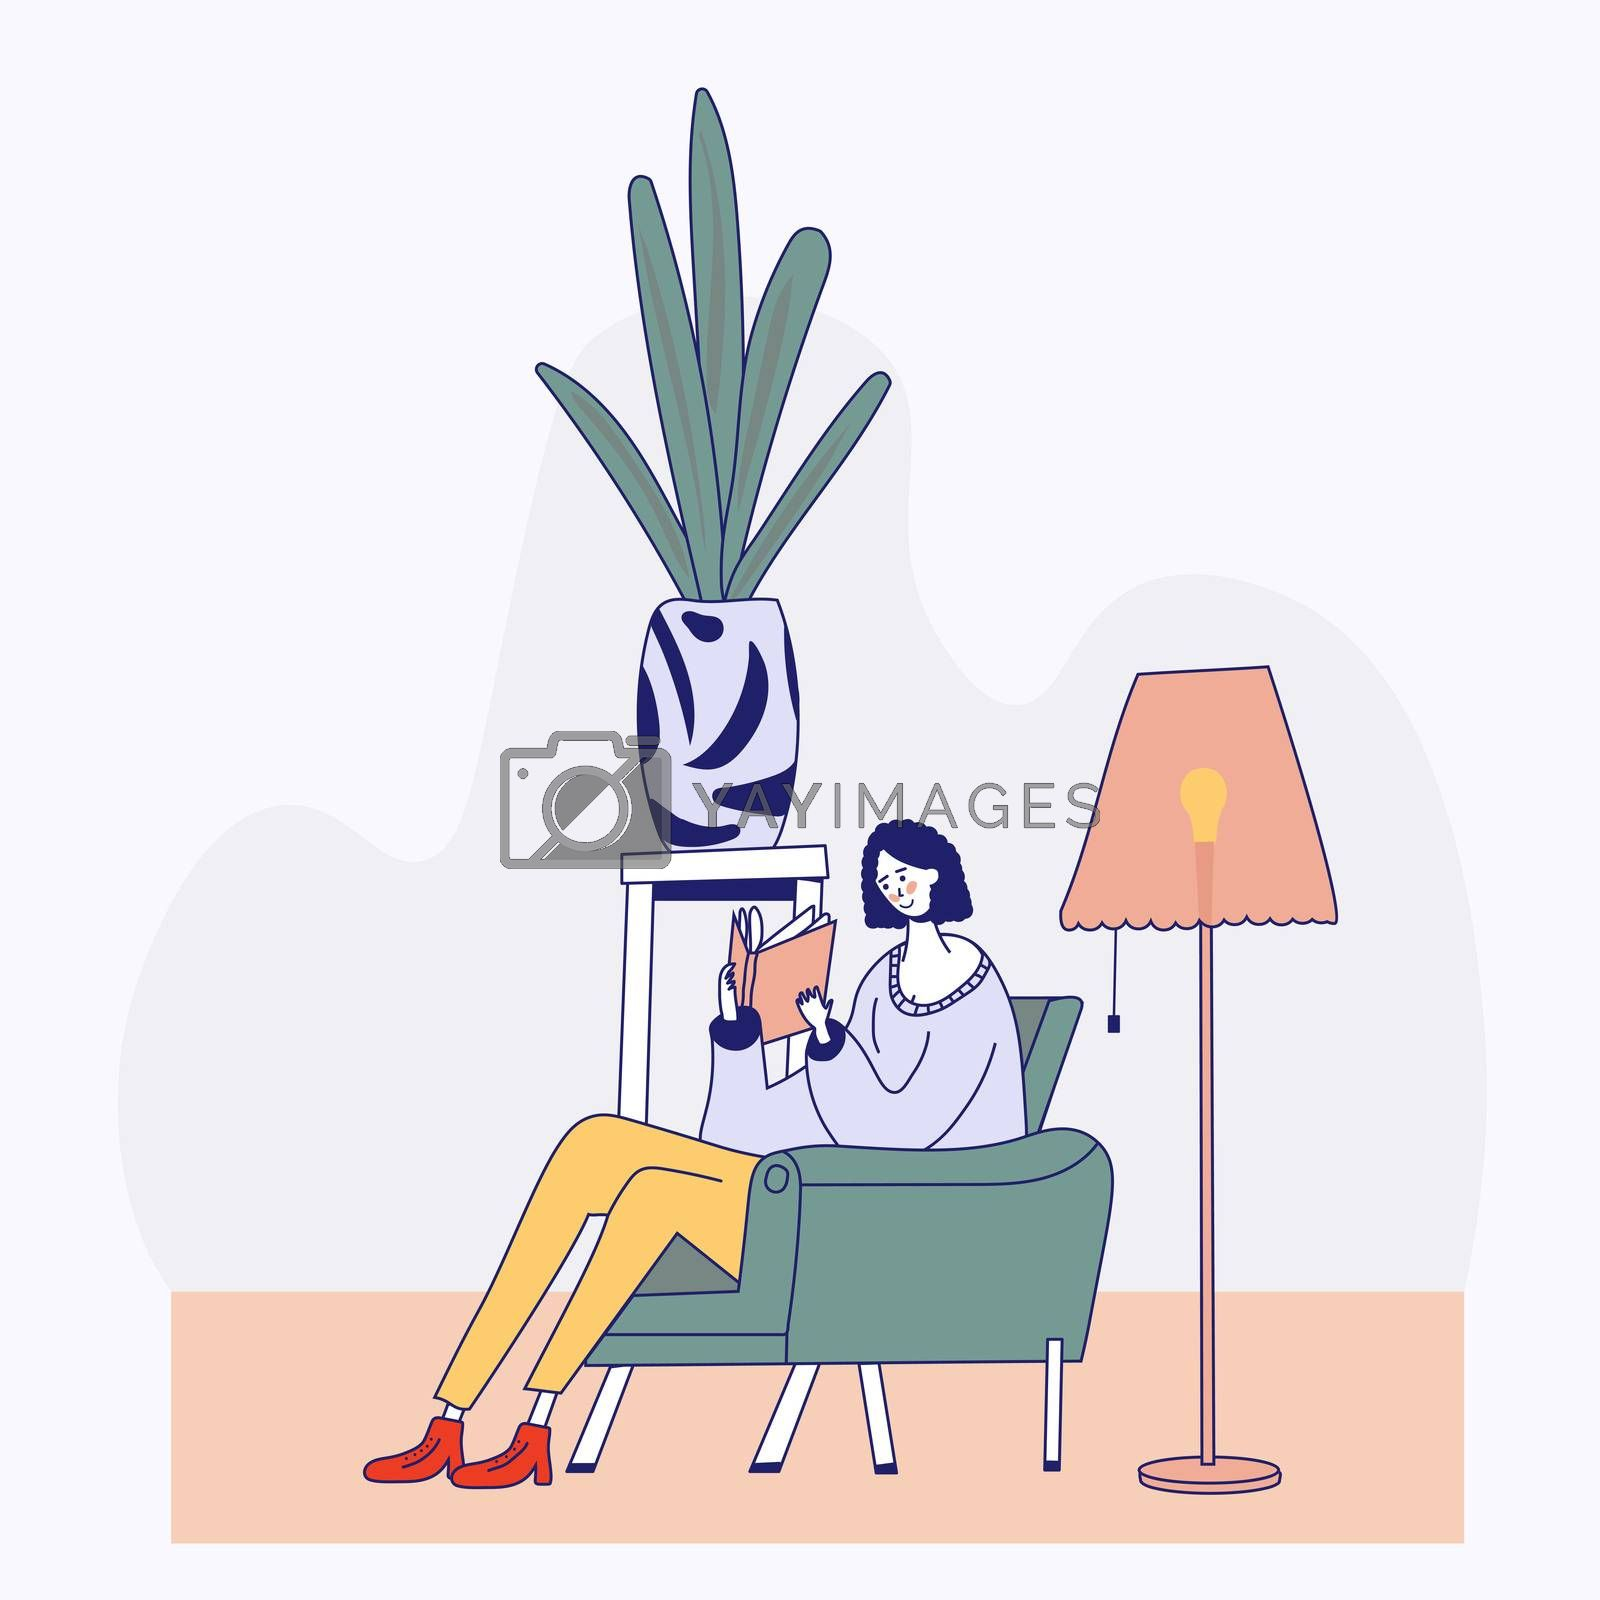 Young woman reading book on chair at home. Cartoon flat outline style illustration.